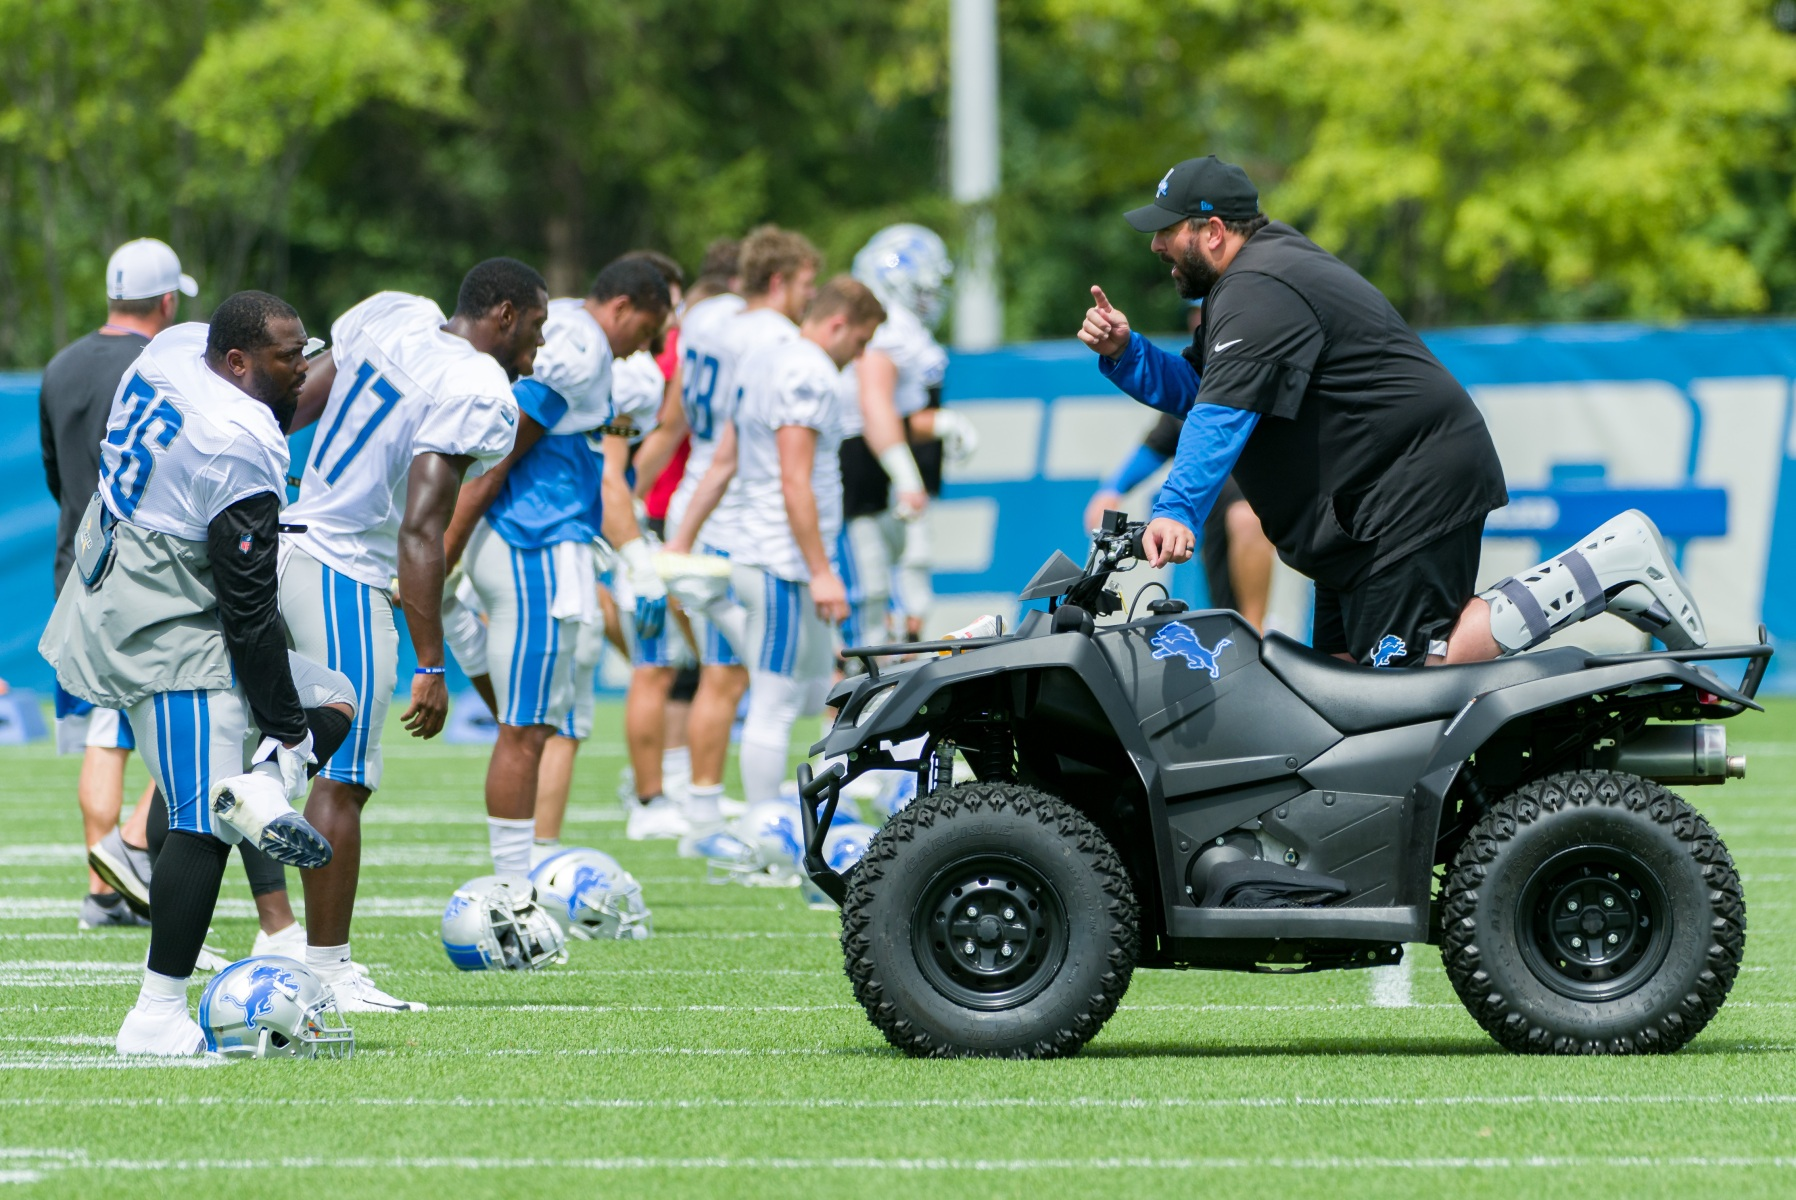 Detroit Lions head coach Matt Patricia talks to players during training camp.